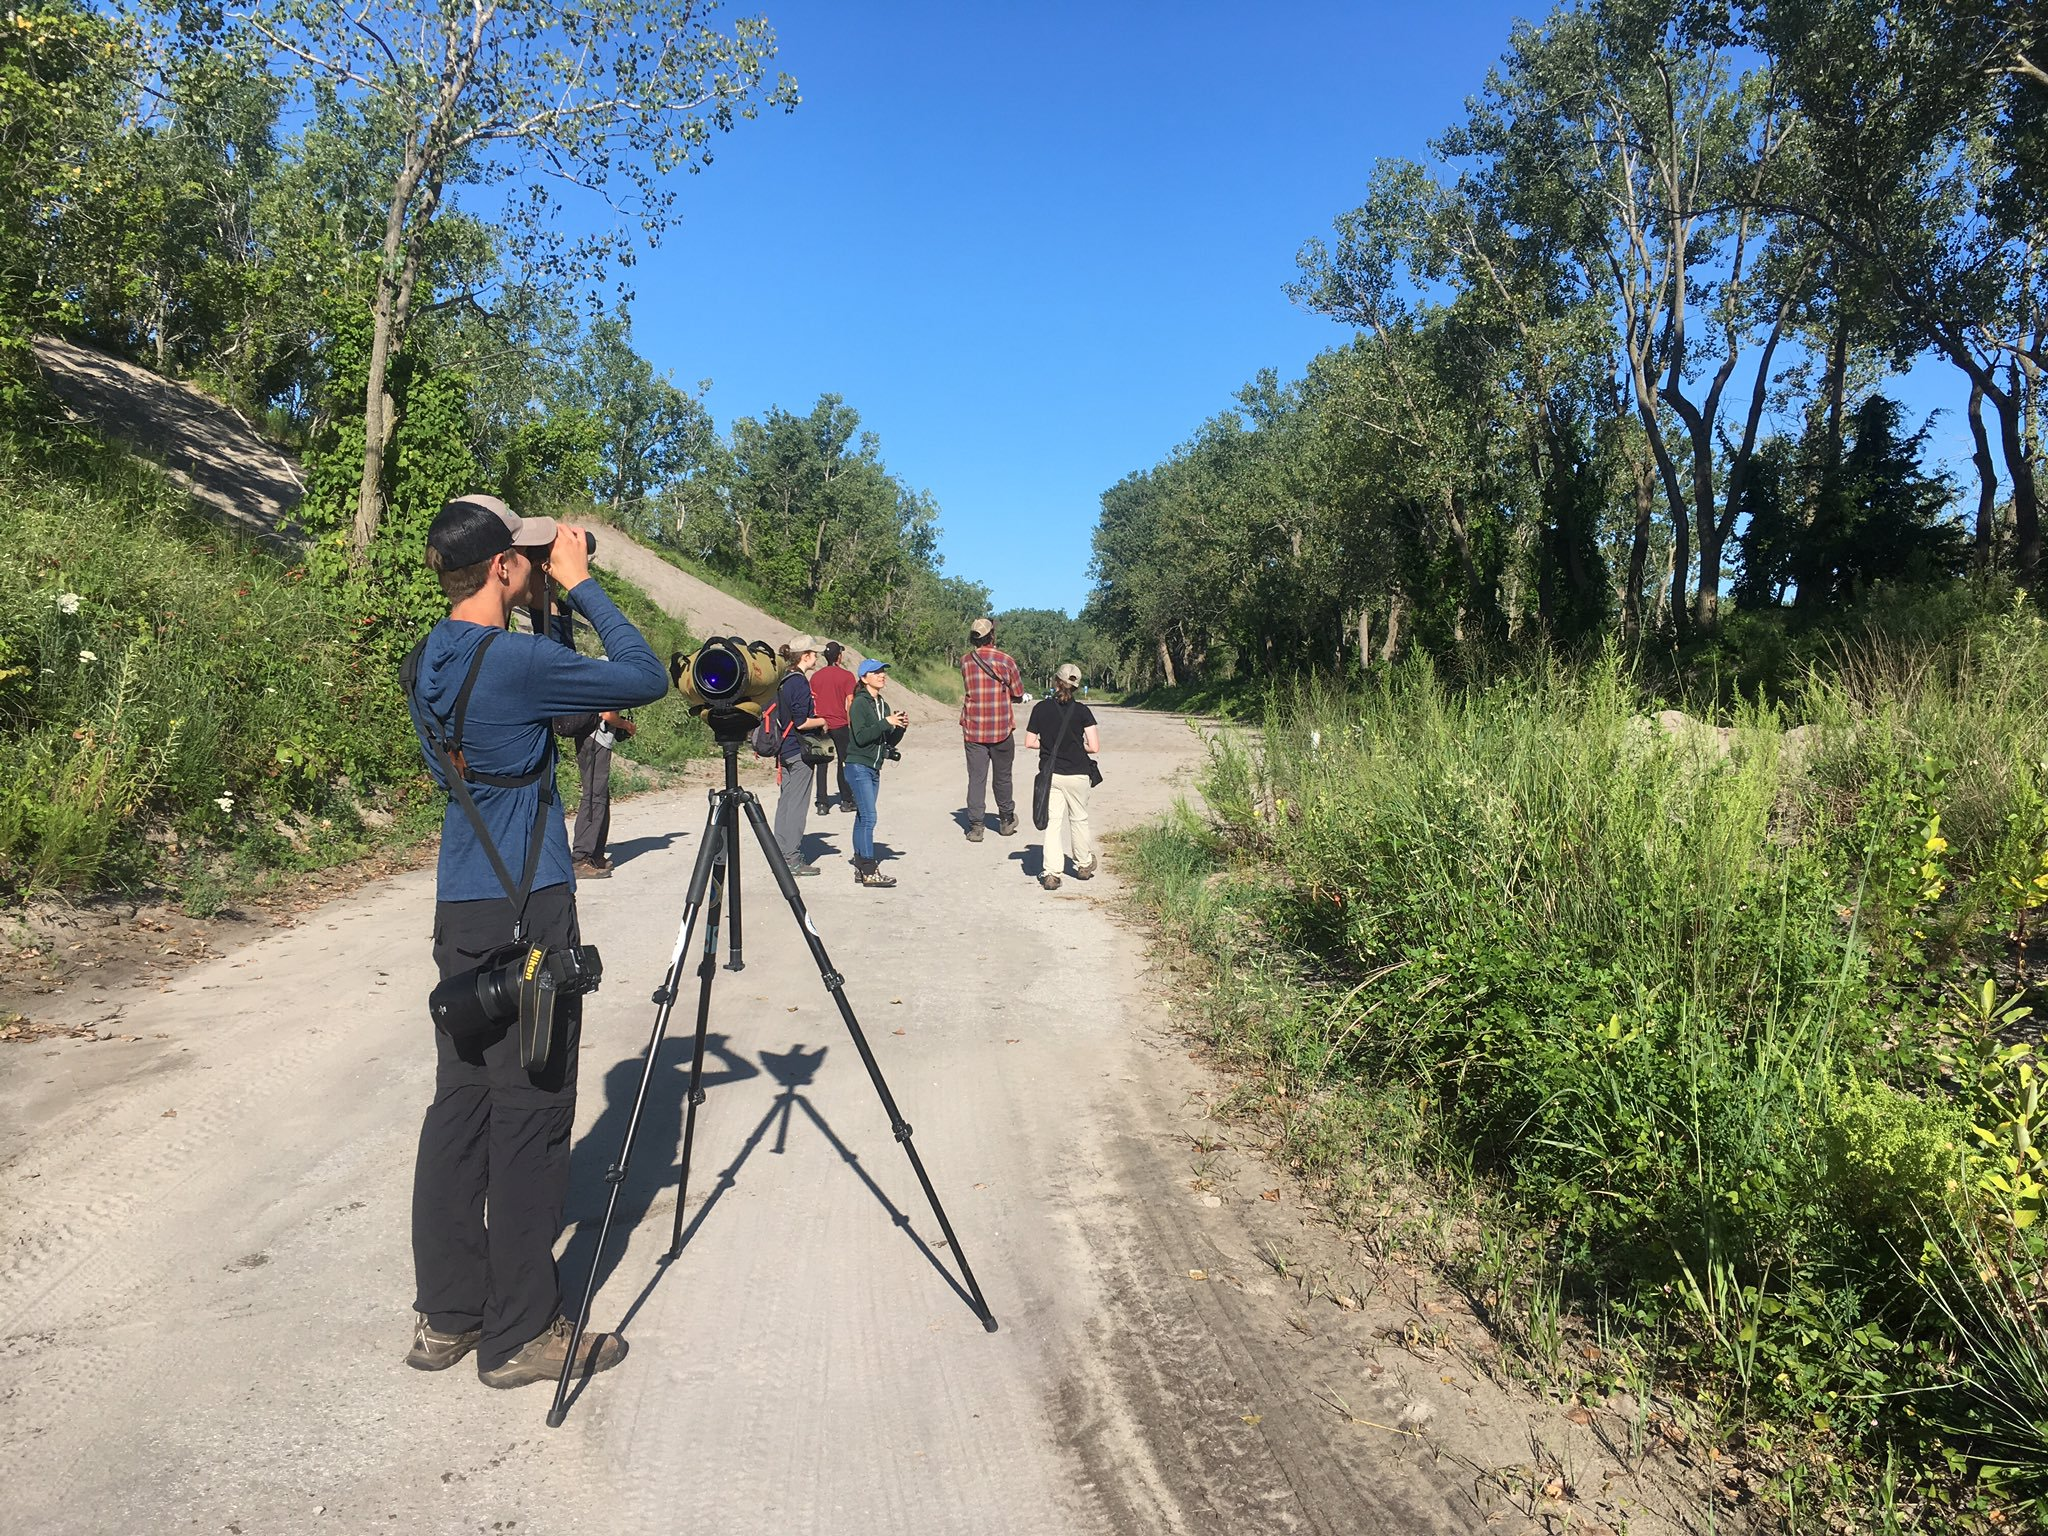 A group of young birders watching birds on a dirt road